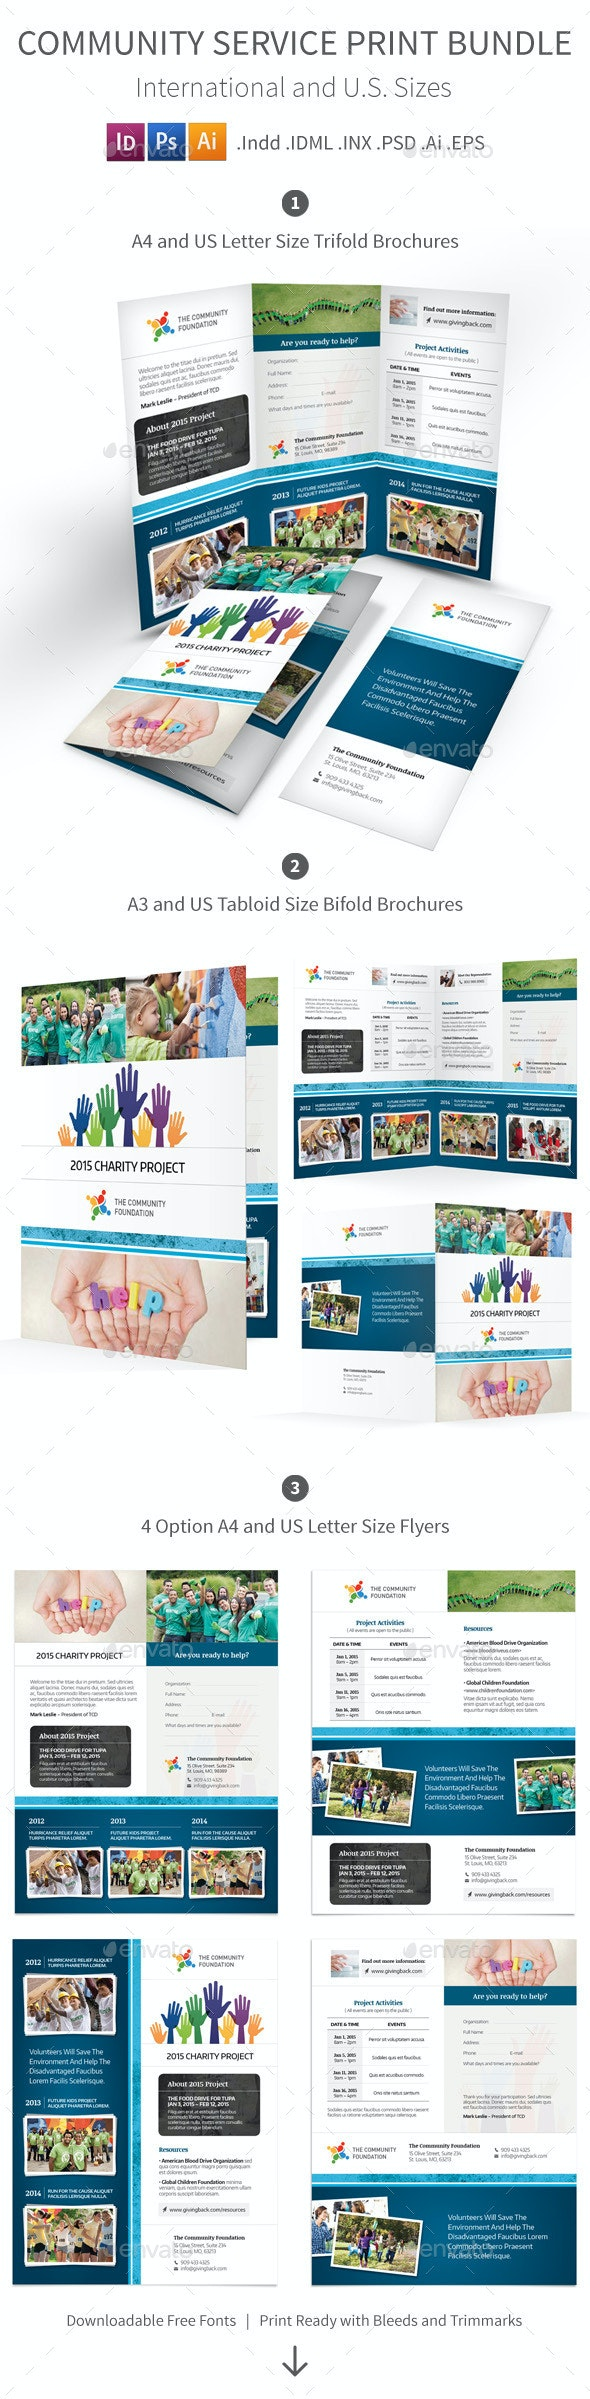 Community Service Print Bundle - Informational Brochures